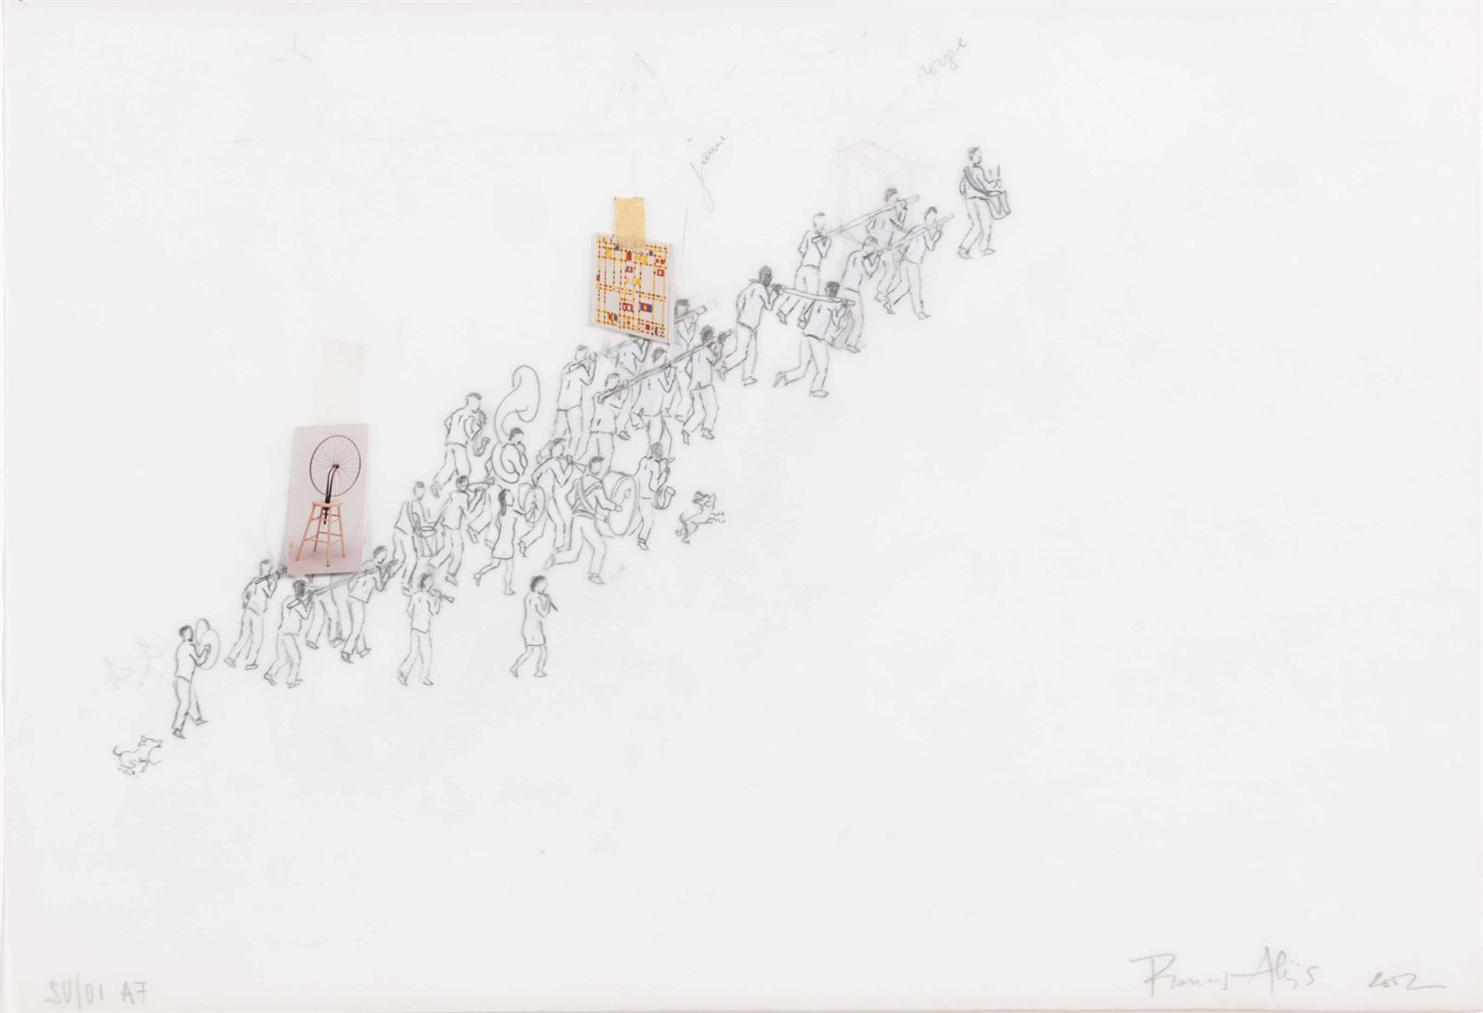 Francis Alys-Untitled (The Procession)-2002